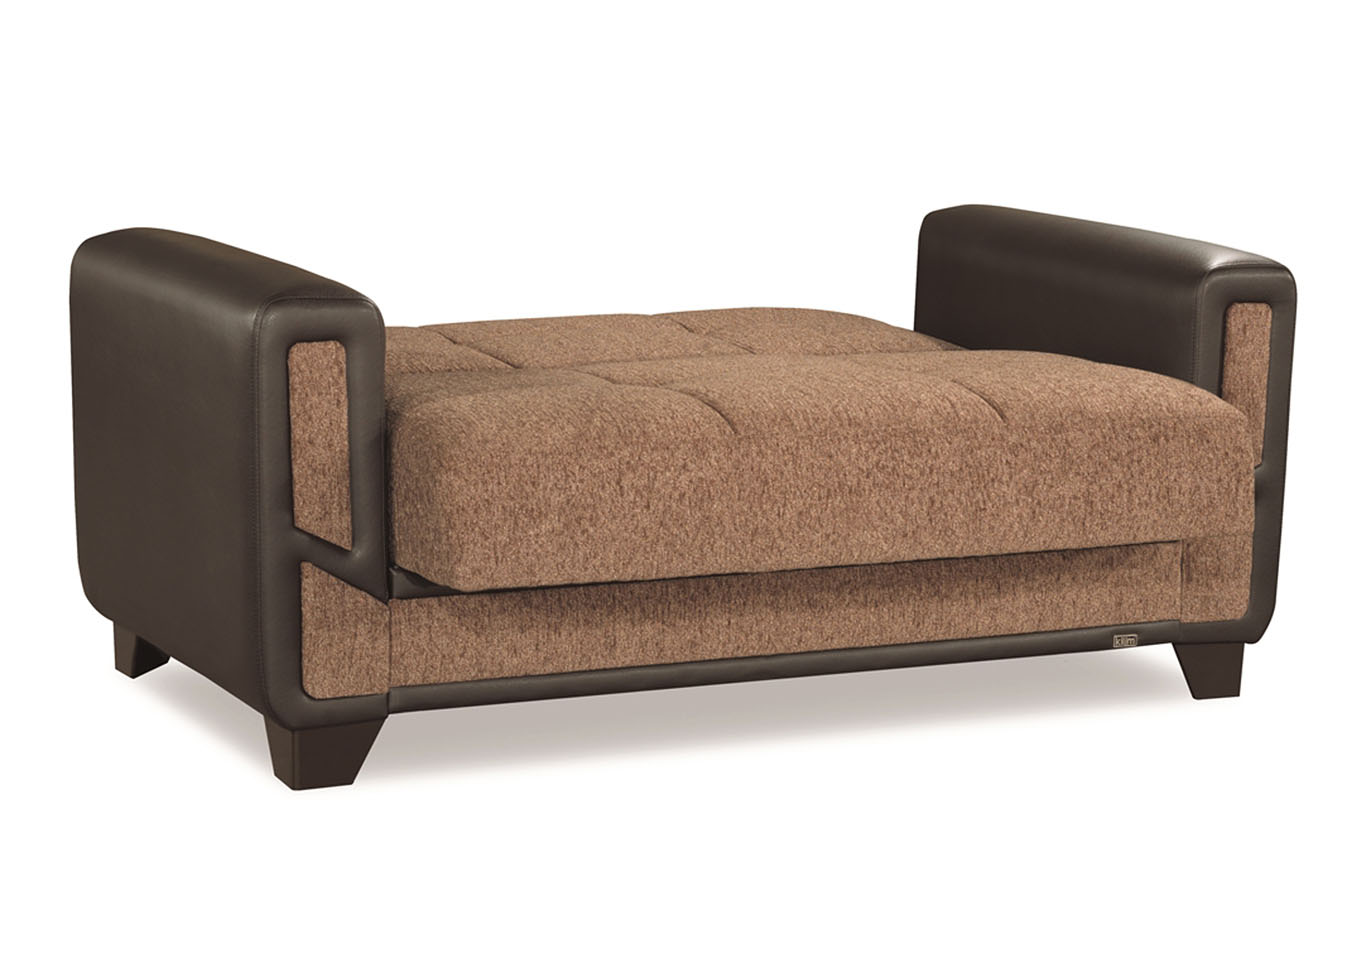 Mondo Brown Chenille Love Seat,CasaMode Functional Furniture